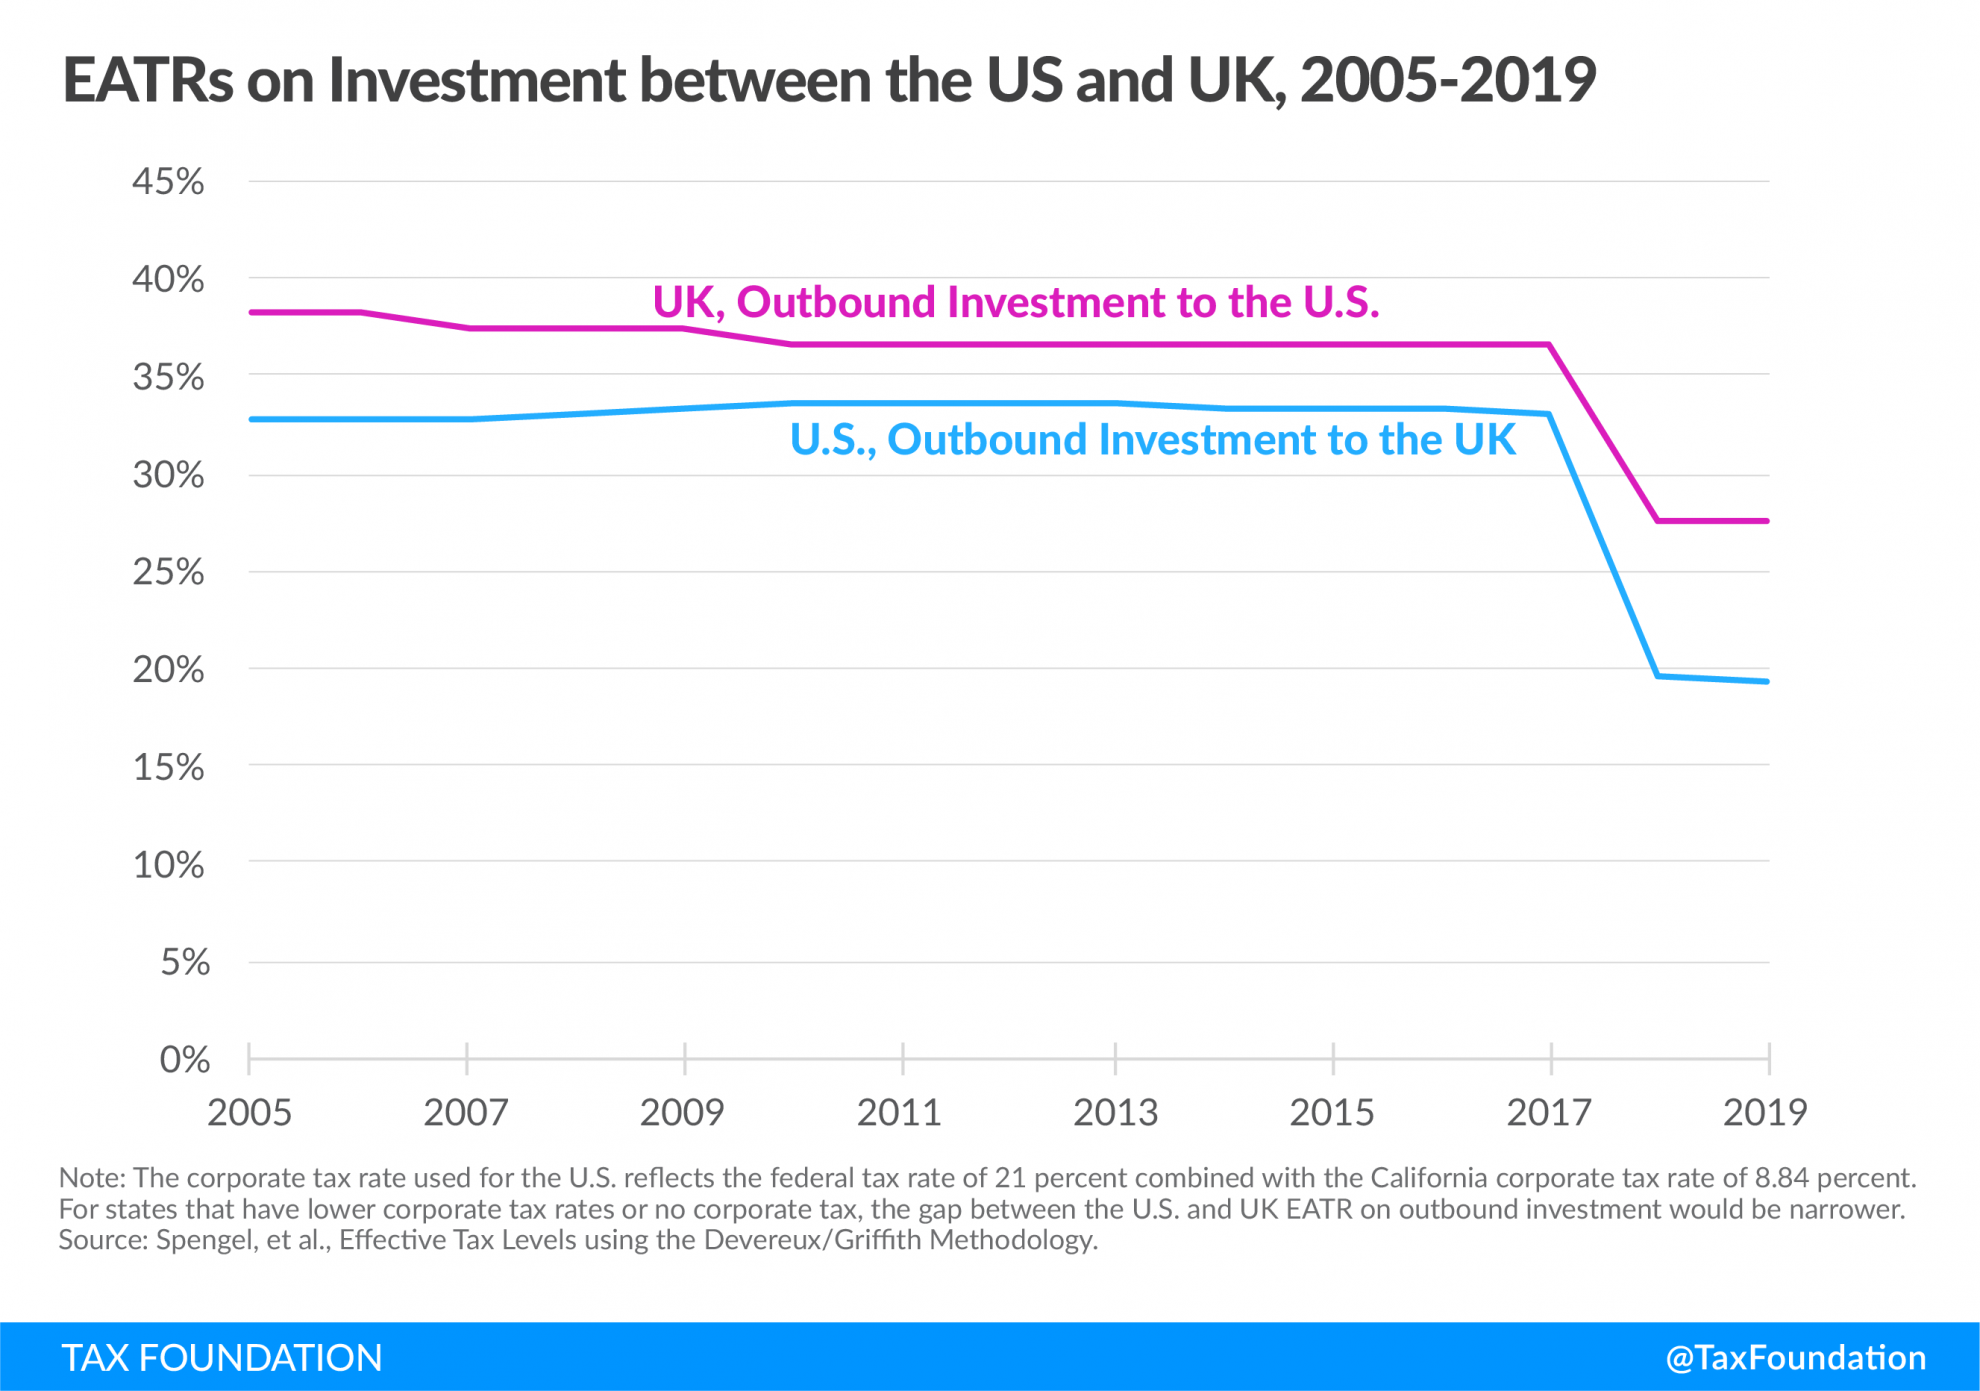 Effective average tax rates in the US and UK, US Average Tax Rates on Investment, UK Effective Average Tax Rates on Investment, UK Average Tax Rates on Investment